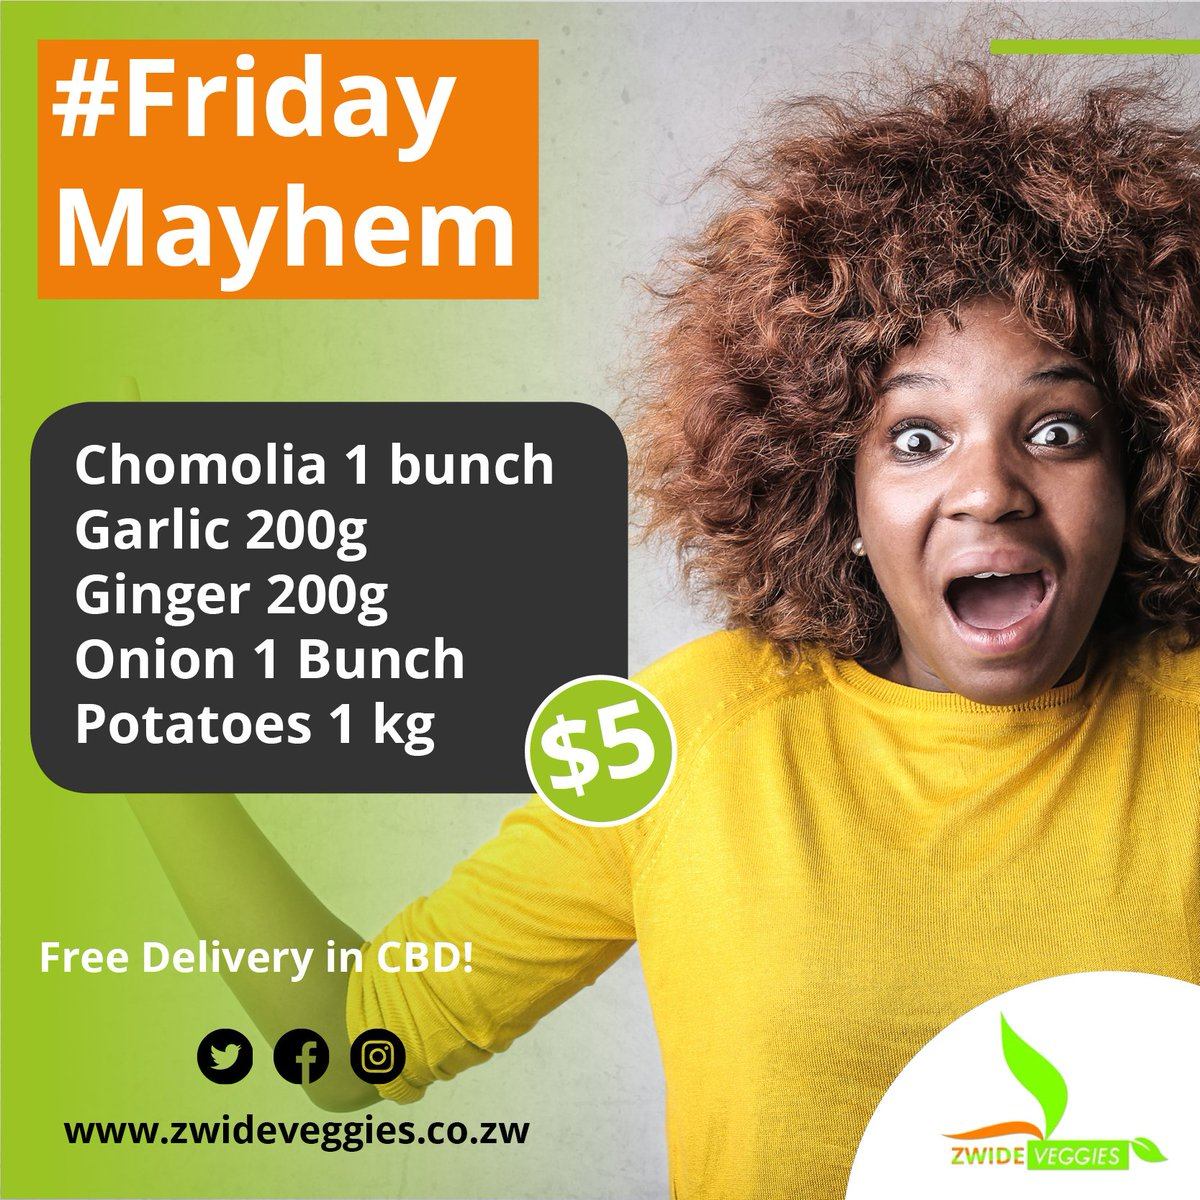 #FridayMayhem🤯 is back and #ZwideVeggies has a great #FridayBox ready for you. Order early to avoid disappointment and free Delivery in the CBD!!! Yes, Free!  @EmmaNxumalo @CurateByo @samtenban @retweet263 #friday #farmfreshveggies #localproduce #bulawayo #zimbabwe #5dollardeals https://t.co/TbHtPQykL1